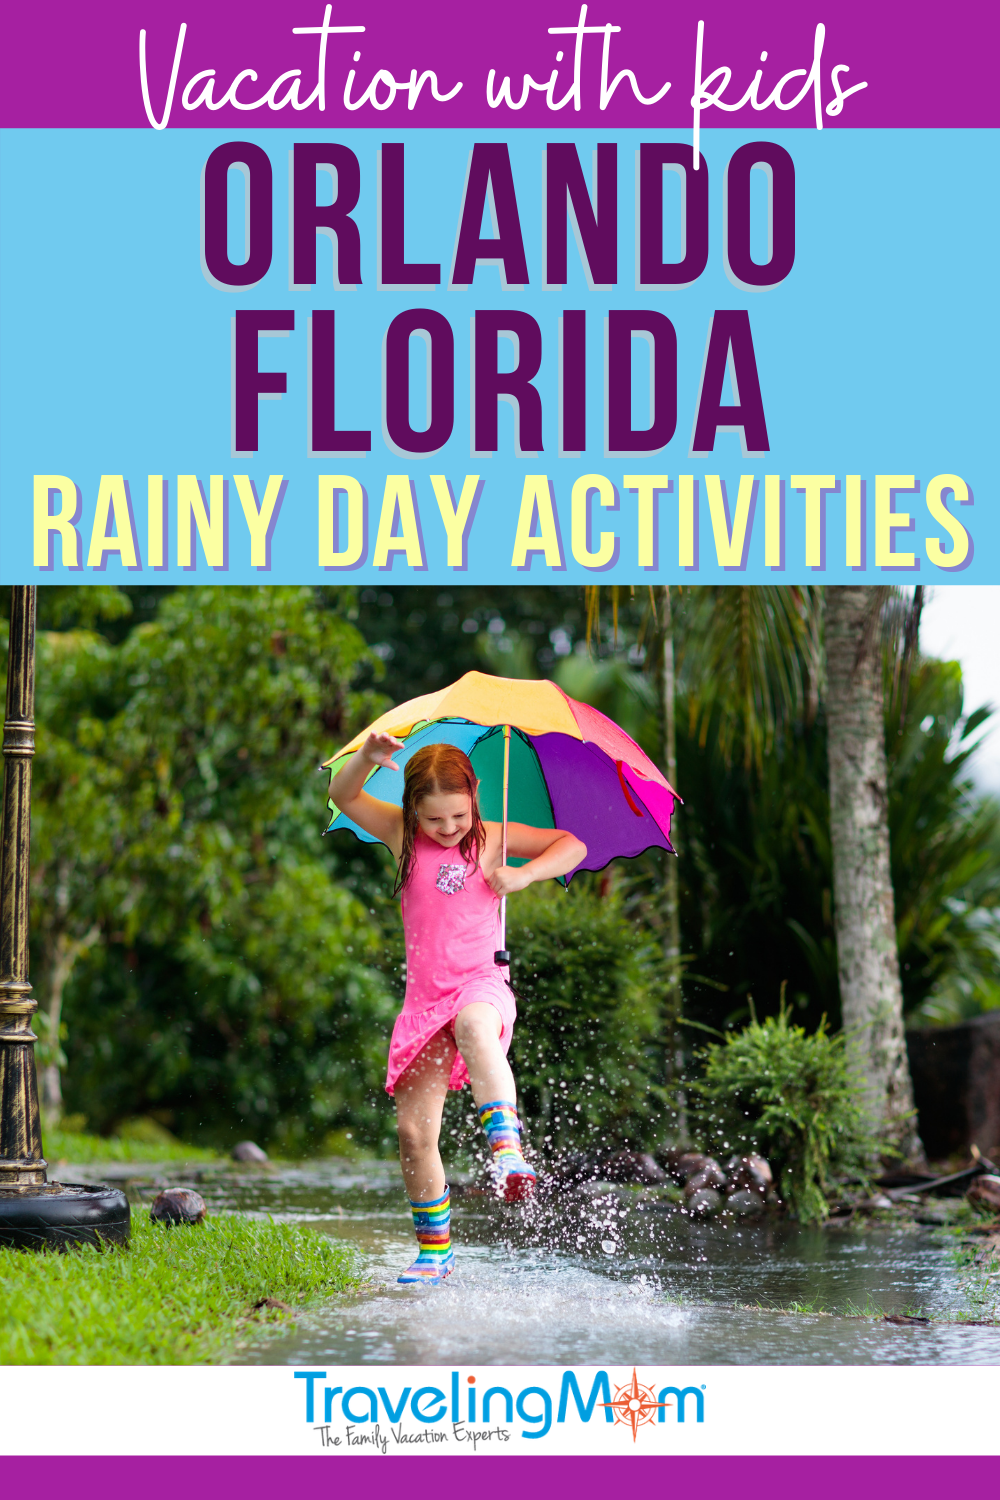 text orlando florida rainy day activities image is of girl in pink holding multicolored umbrellas